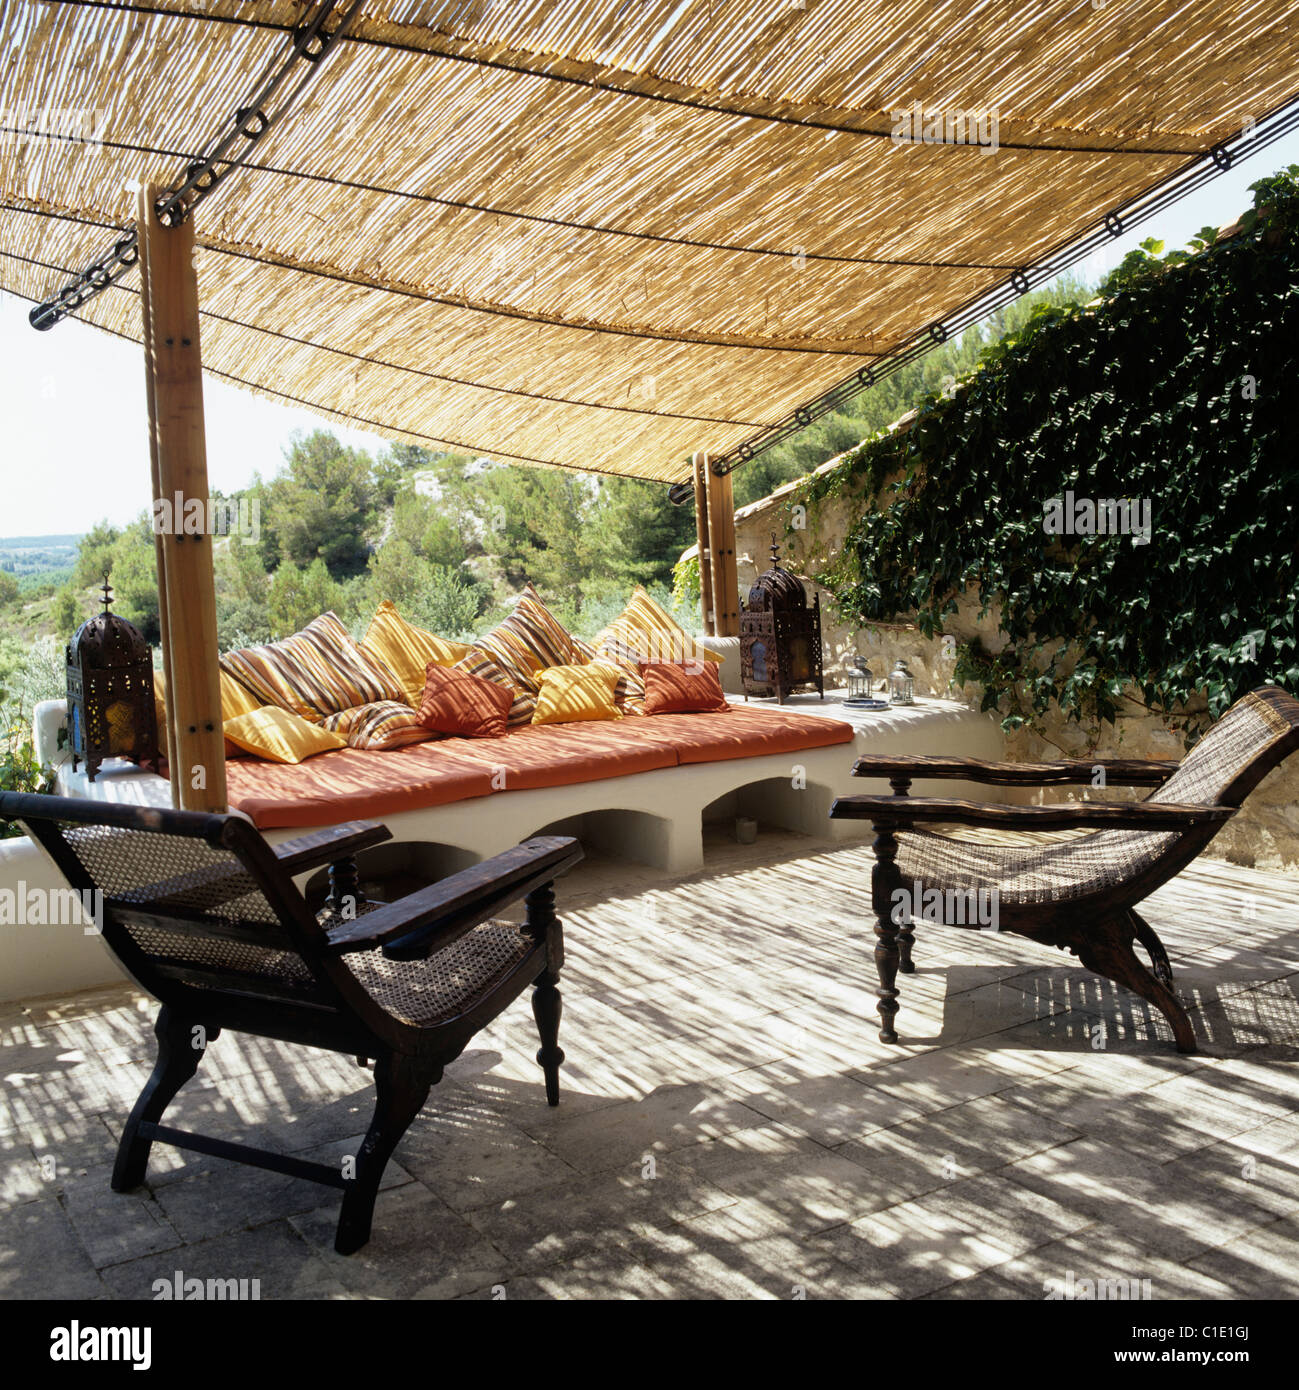 Wooden armchairs and cushioned seating on terrace with bamboo awning and rural Provencal views - Stock Image